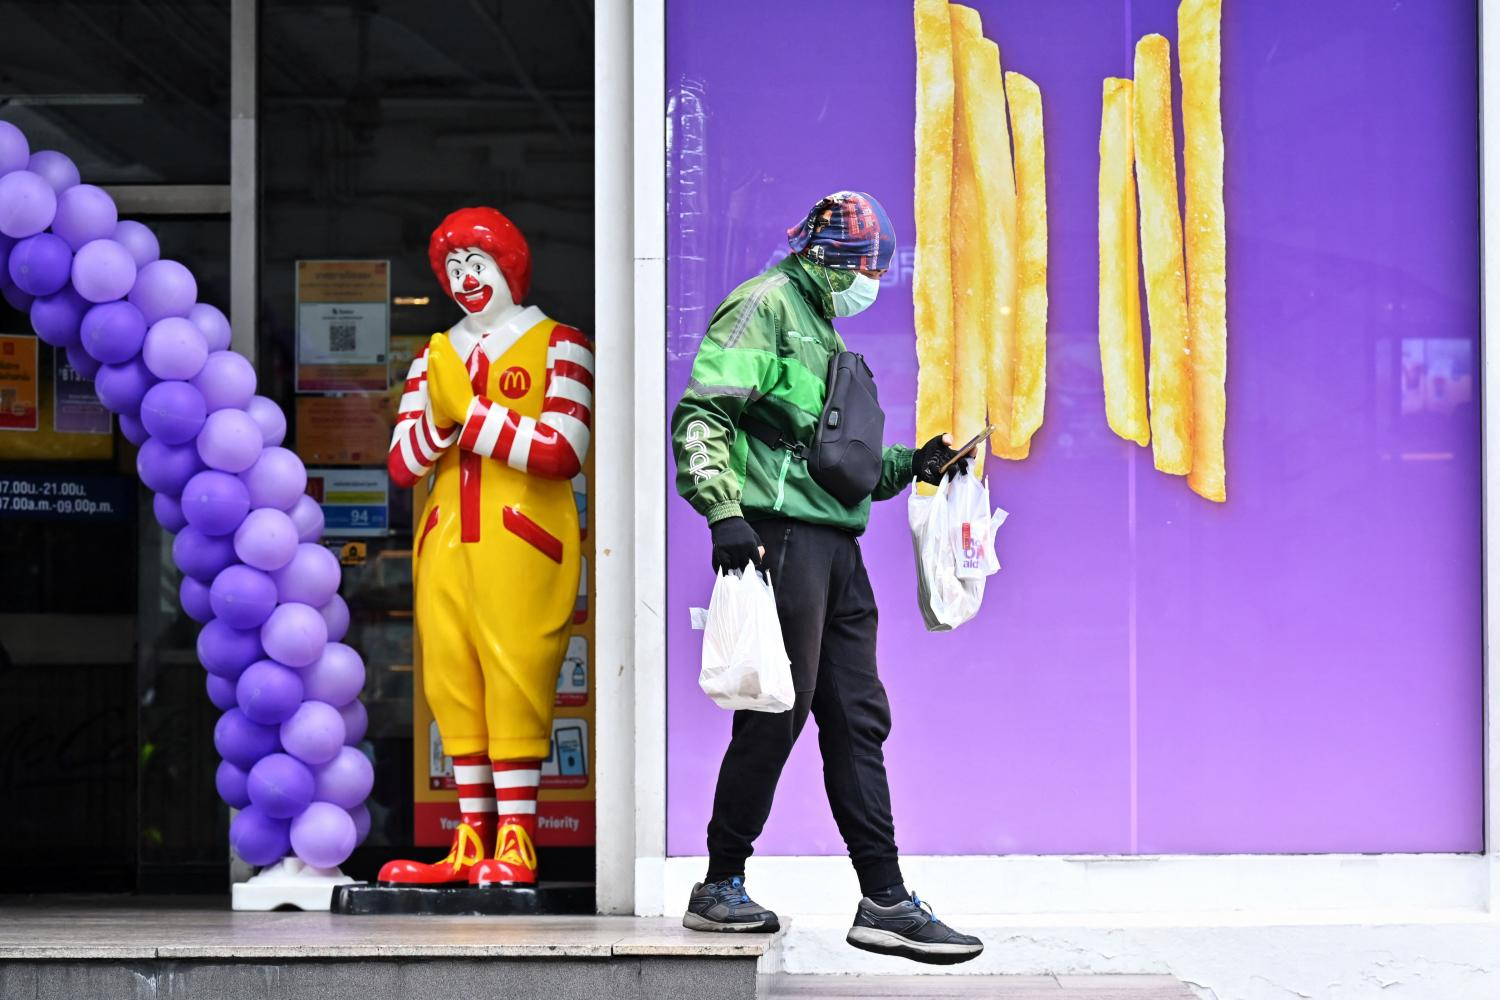 A GrabFood delivery driver picks up orders from a McDonald's branch in Bangkok on Friday, as dine-in bans continue due to Covid-19 restrictions across the country. AFP